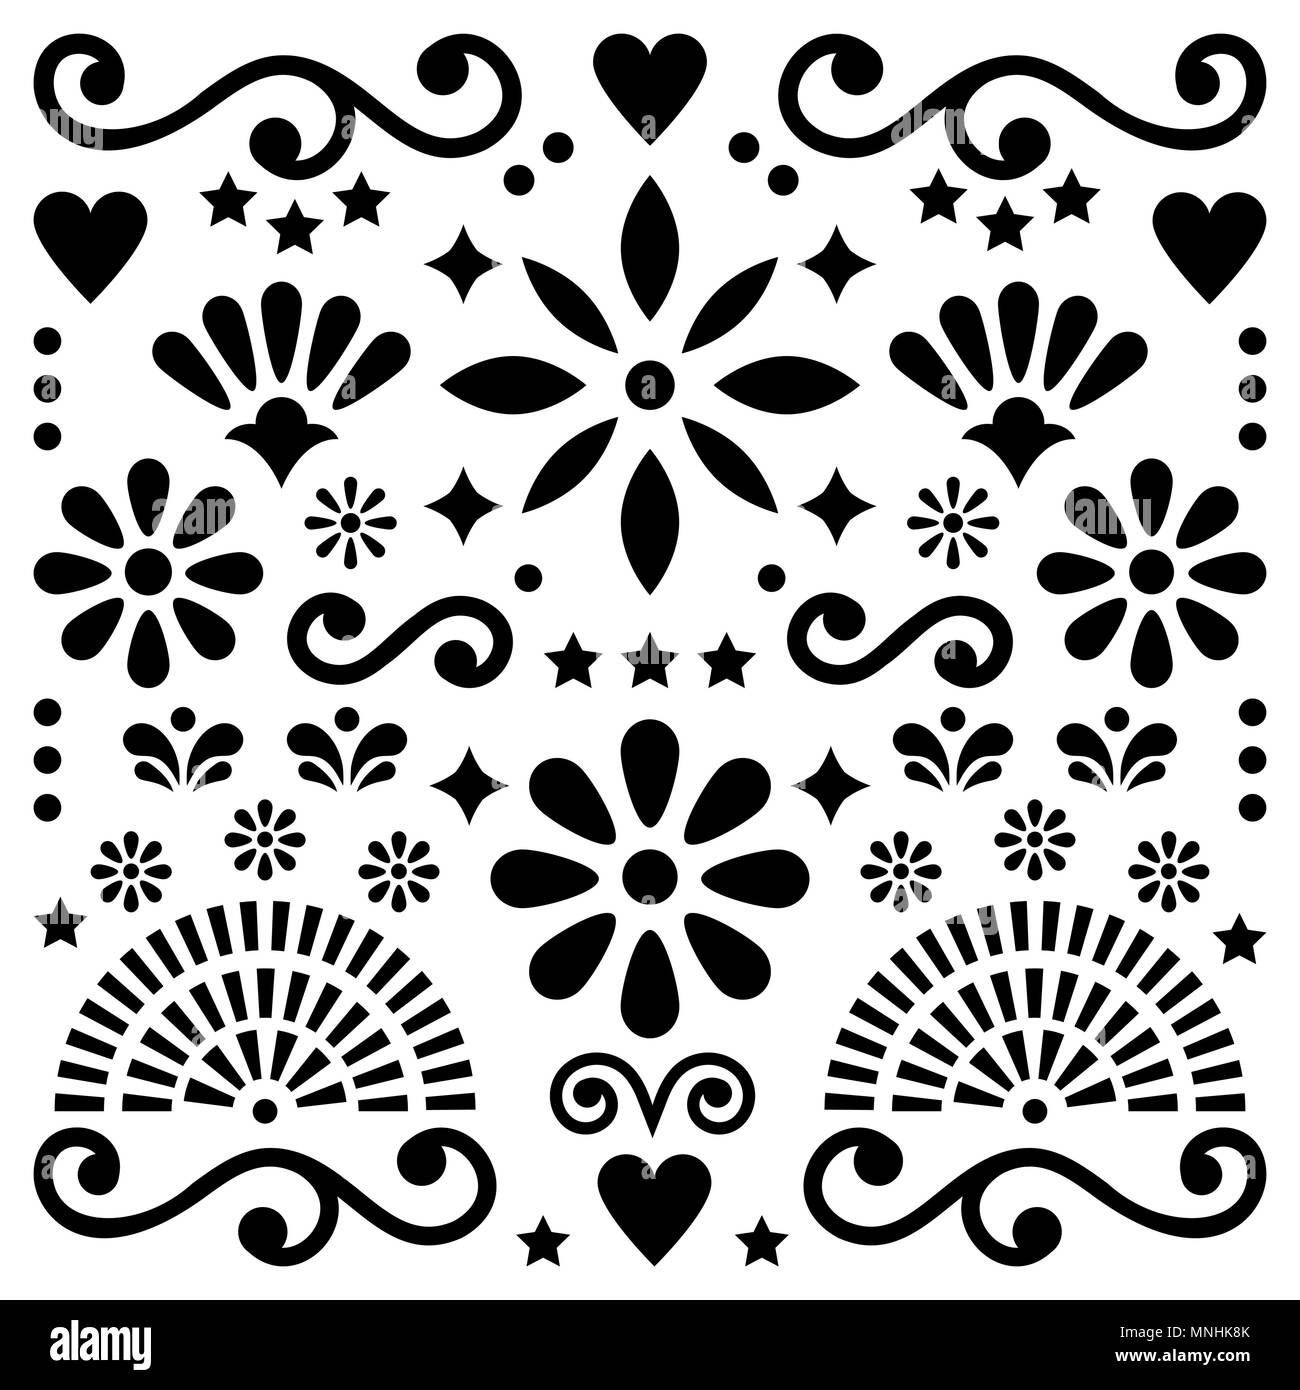 Mexican Folk Art Vector Pattern Black And White Design With Flowers